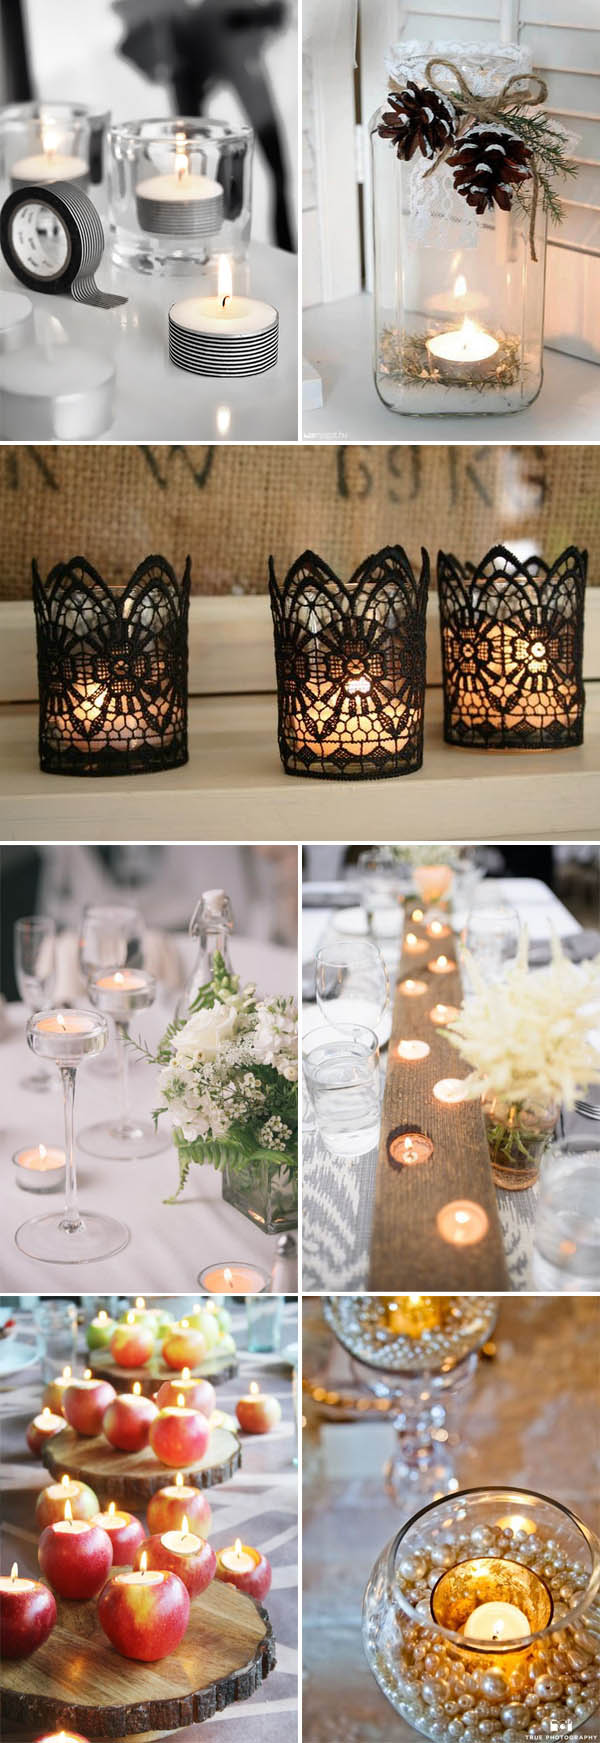 super easy DIY wedding decor ideas with simple short candles